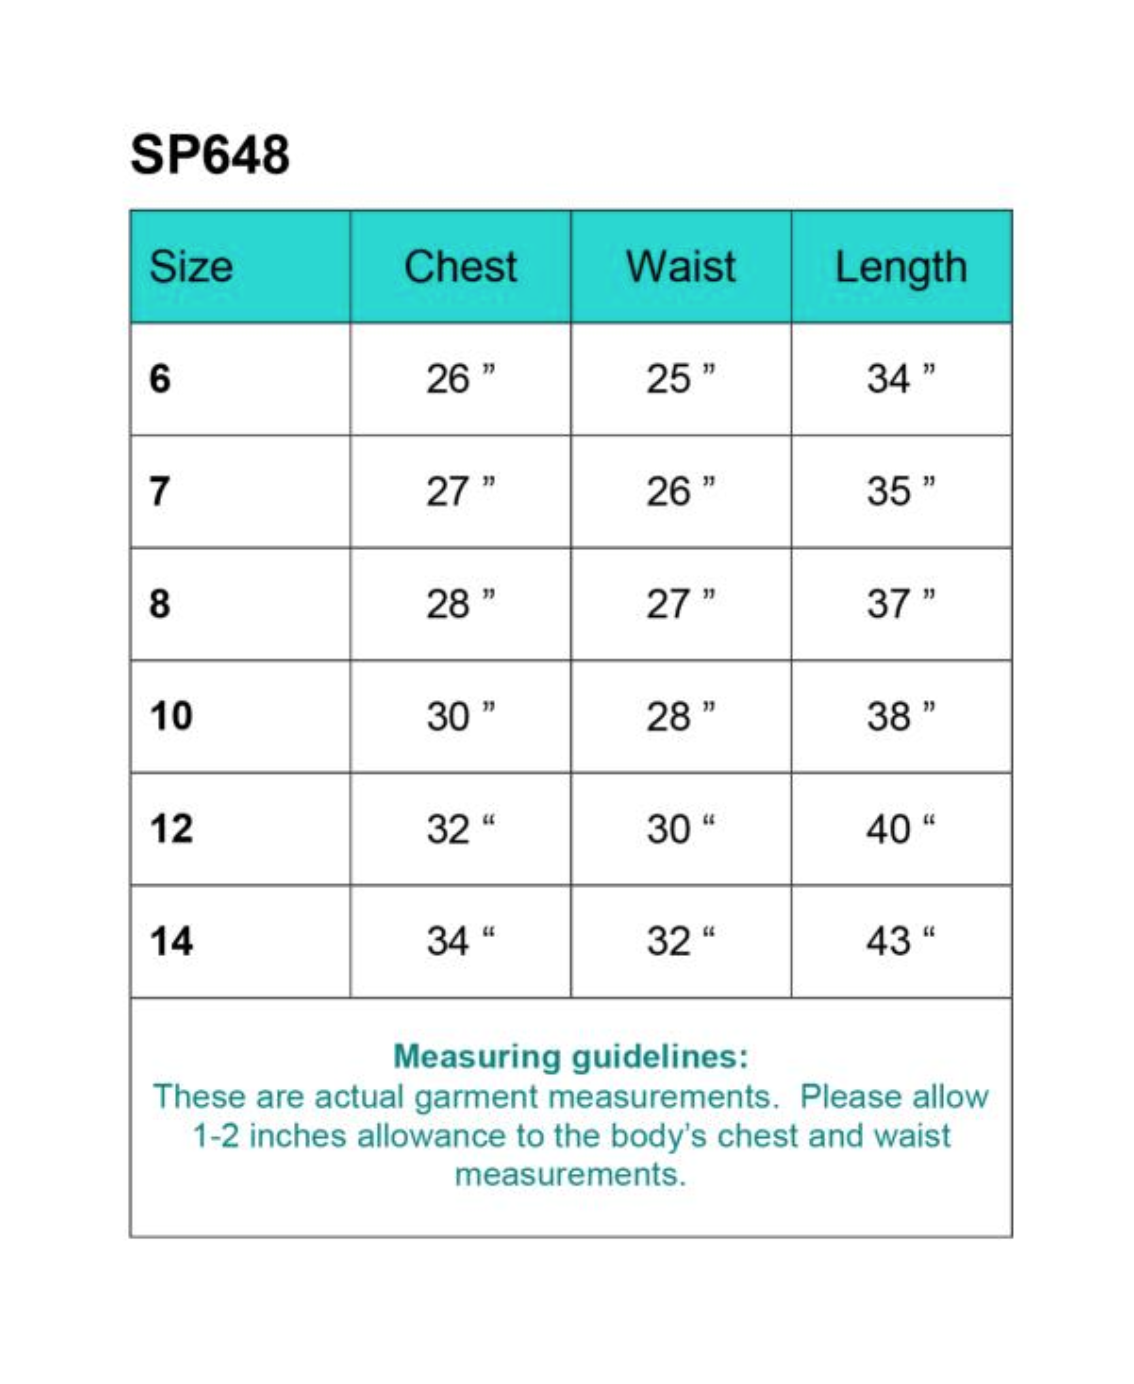 sizing-chart-sp648.png